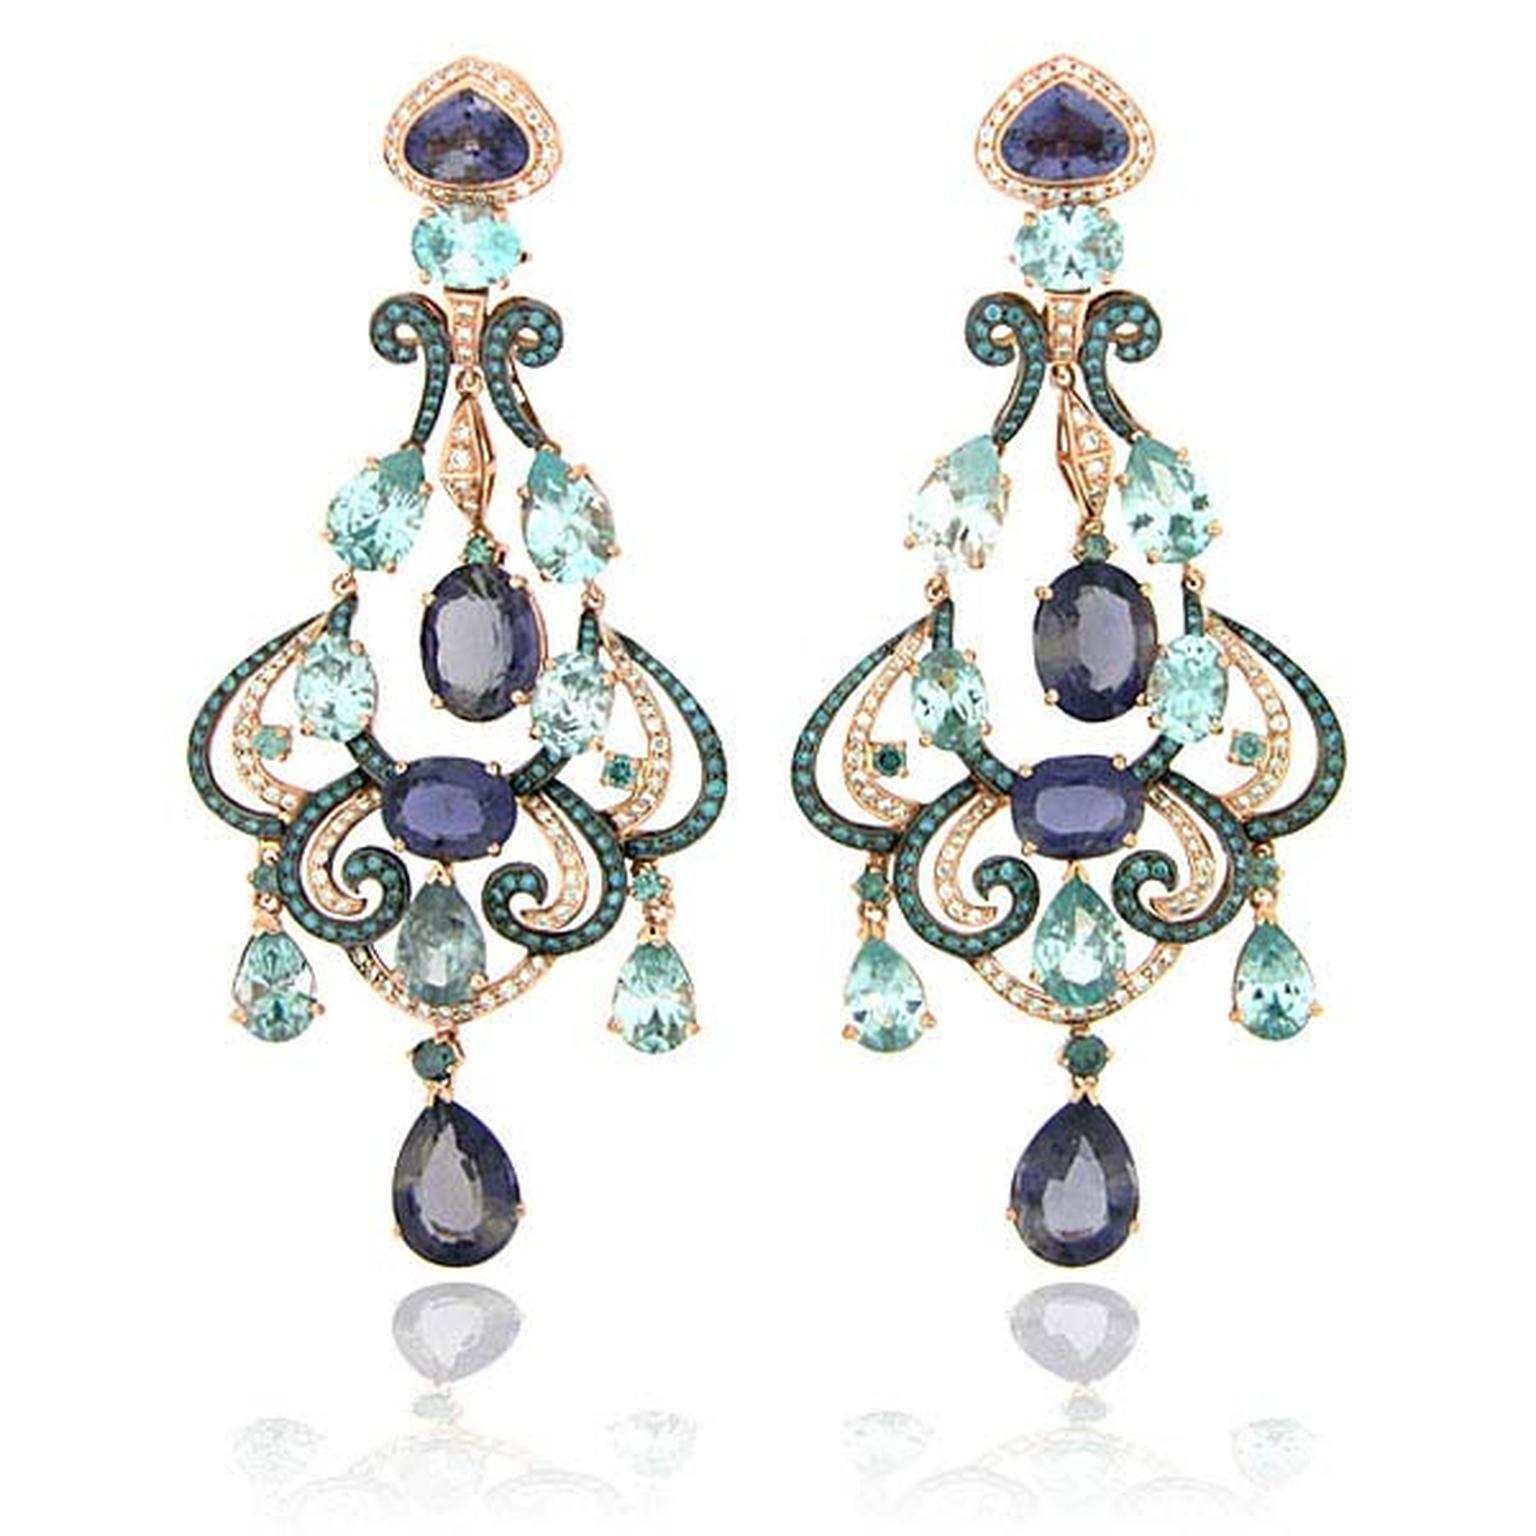 Zorab Atelier de Creation Delicate Brilliance Jeweled chandelier earrings featuring amethyst quartz, blue and white diamonds, blue topaz and blue zircon.